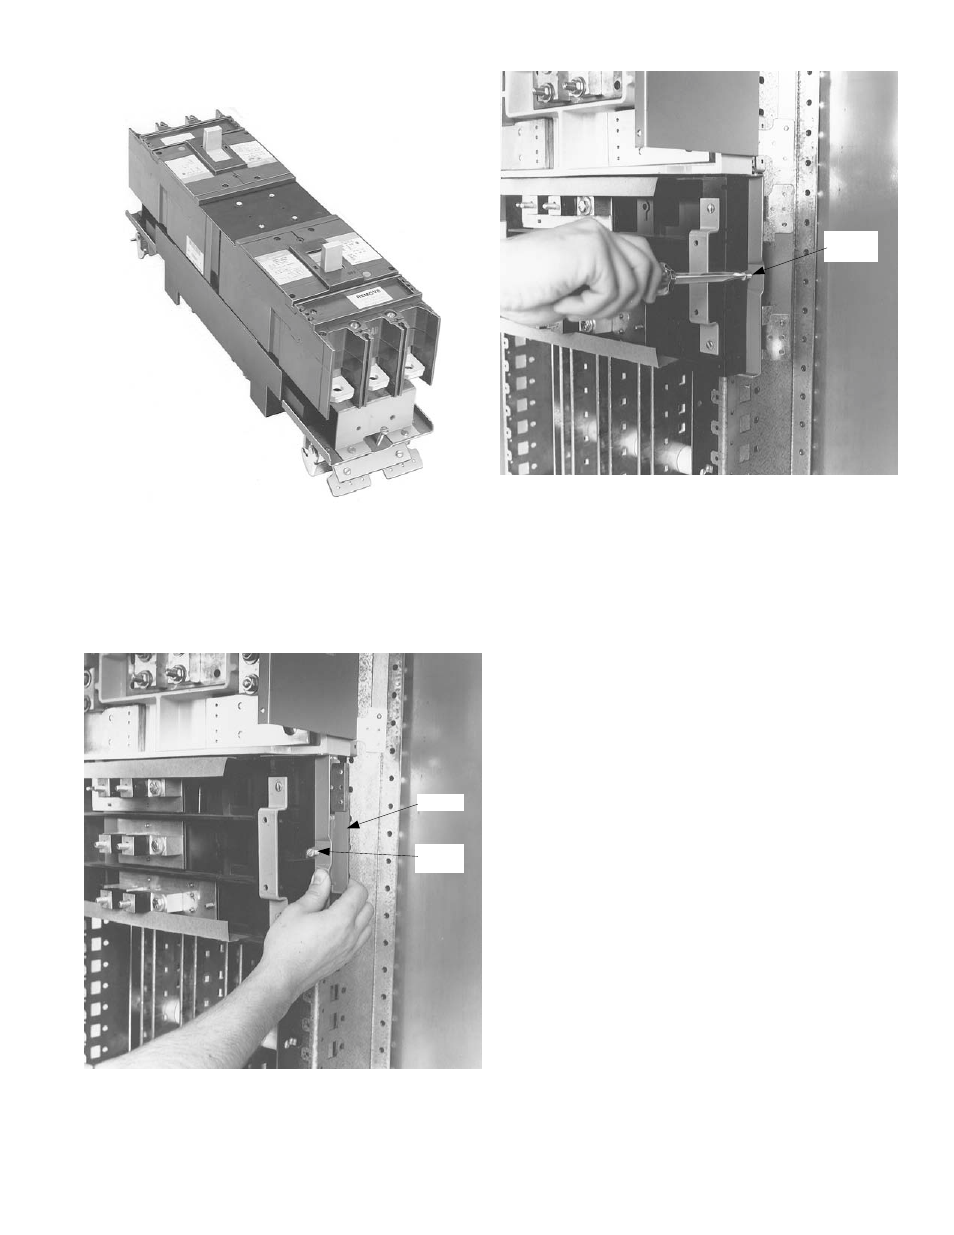 Geh 5673p3 Ge Industrial Solutions Spectra Series Power Wiring Diagram Panelboards Amc4gb And Amc6gb User Manual Page 3 4